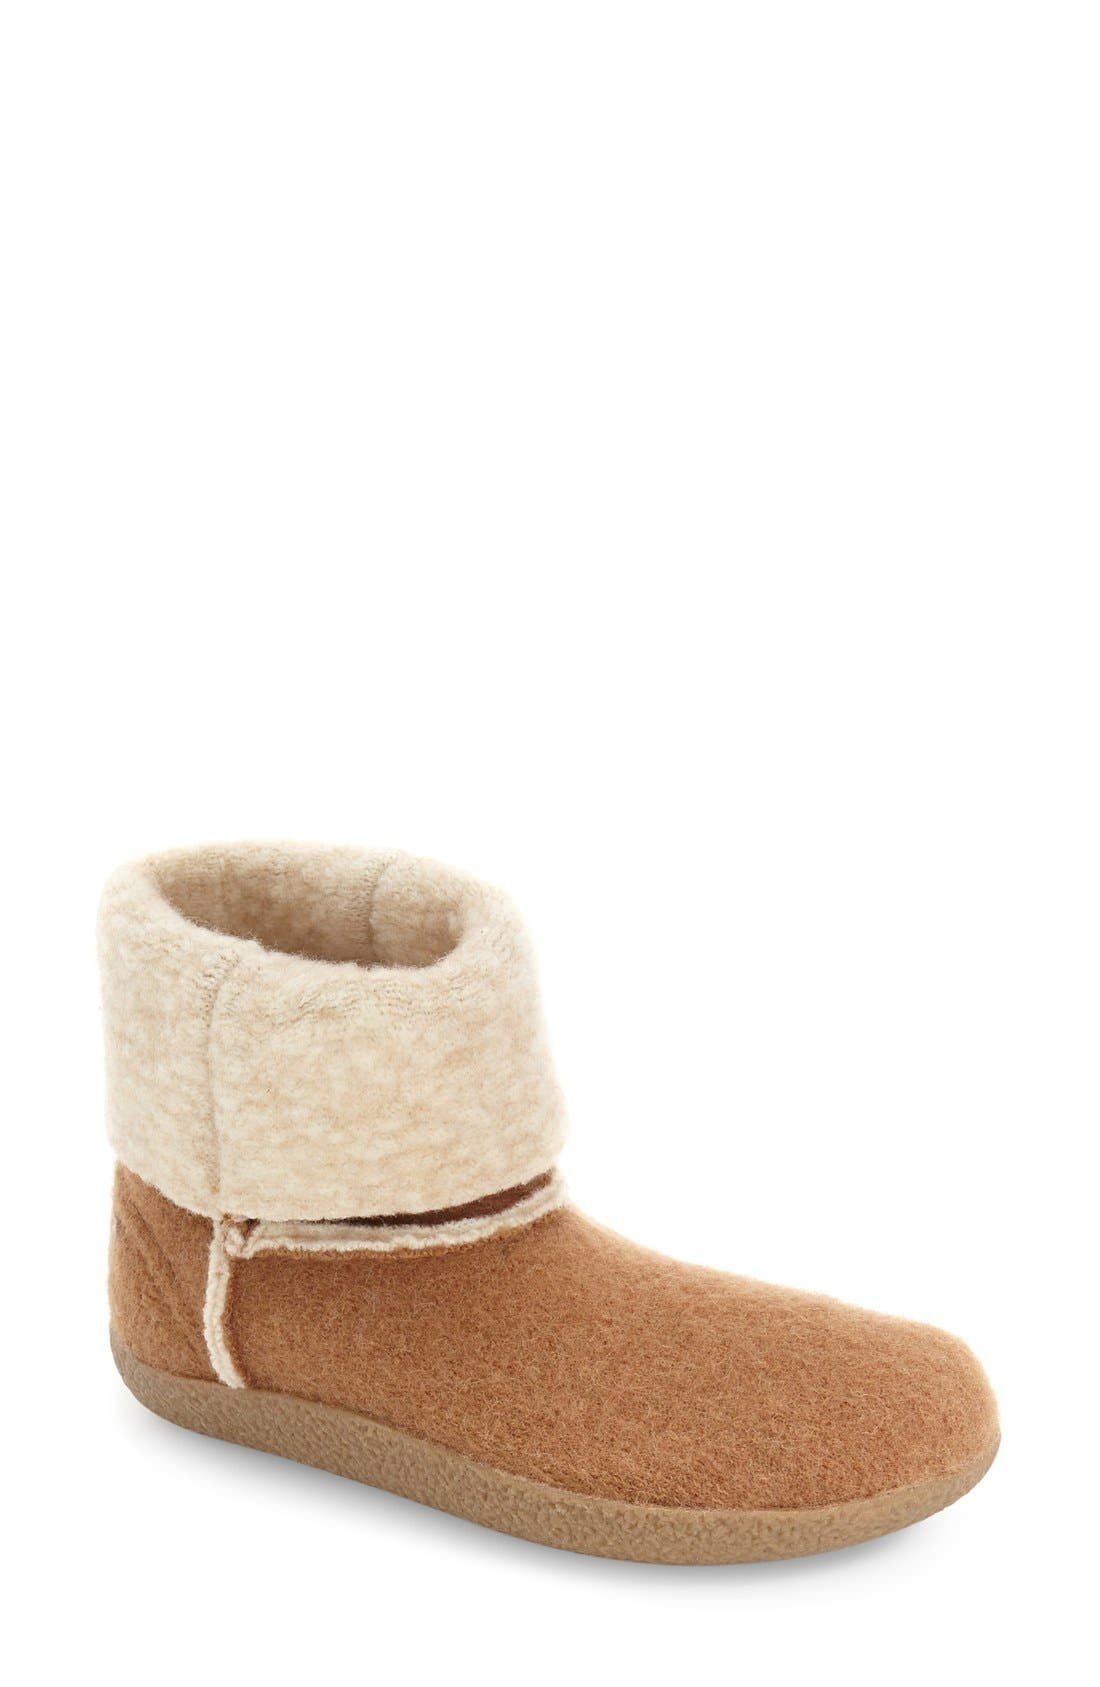 Bigelow Cuffed Water Repellent Slipper,                             Main thumbnail 1, color,                             ALMOND WOOL